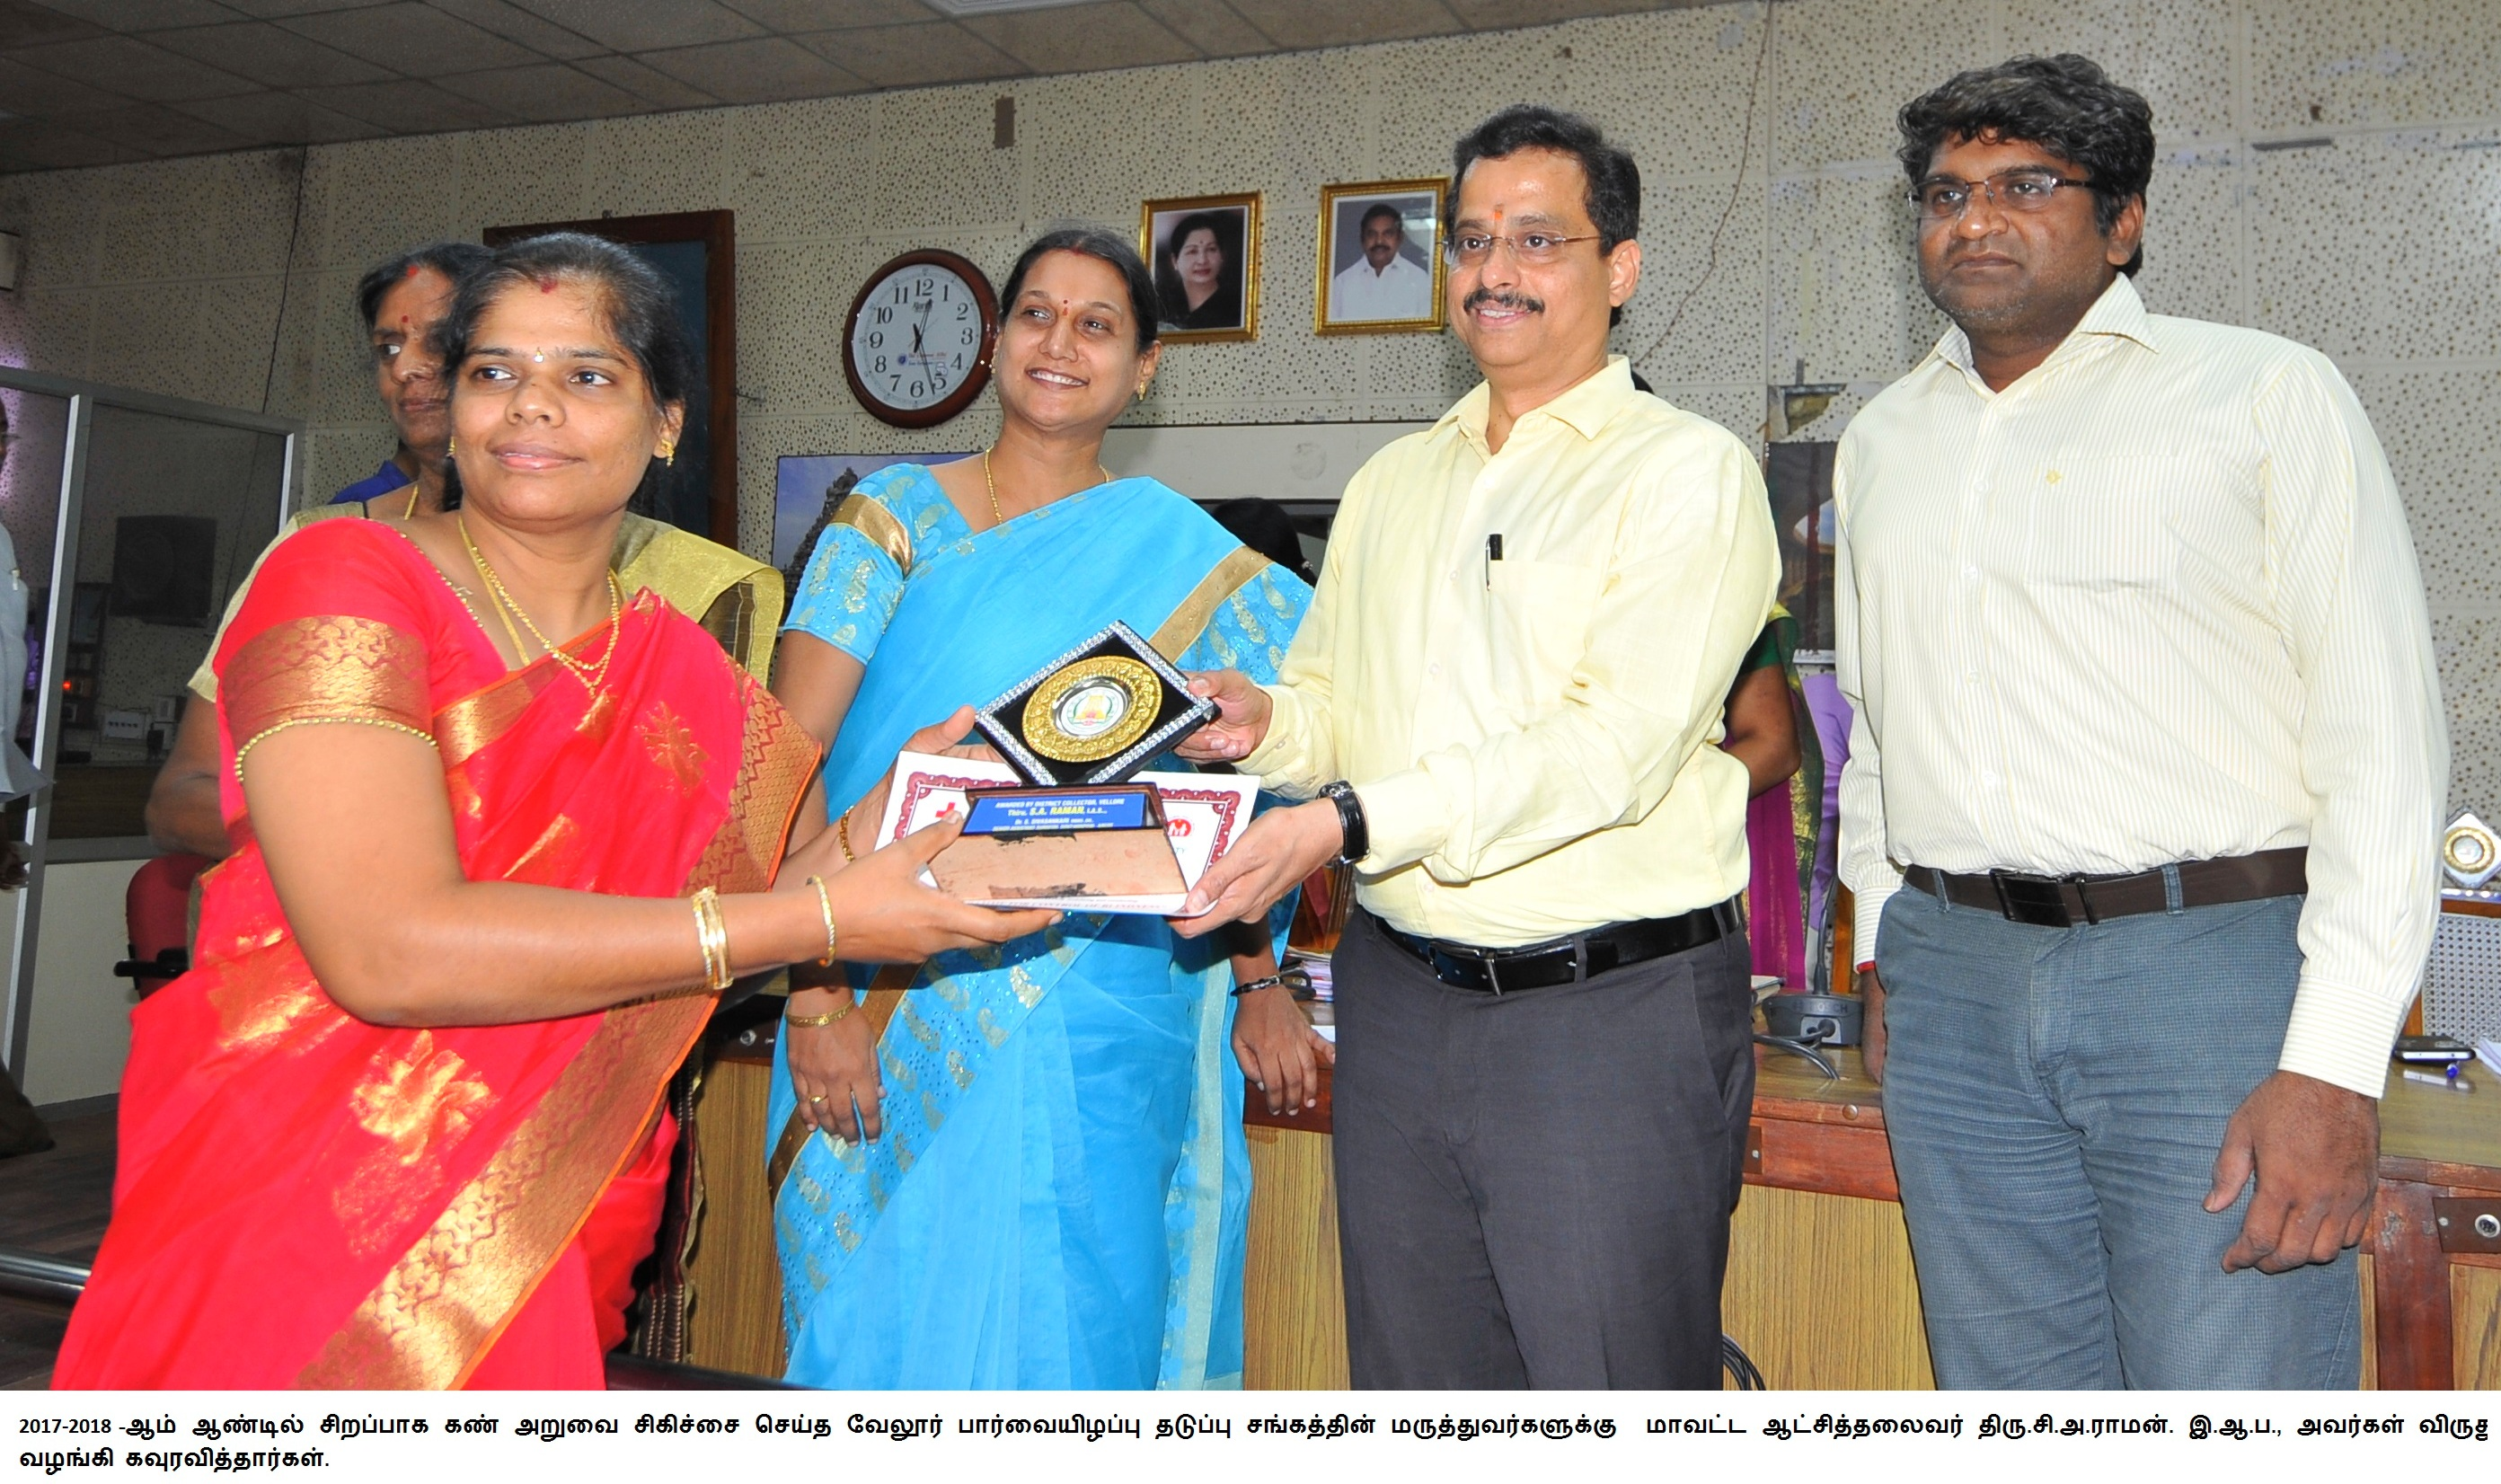 Doctors felicitated by District Collector Thiru.S.A.Raman, I.A.S.,